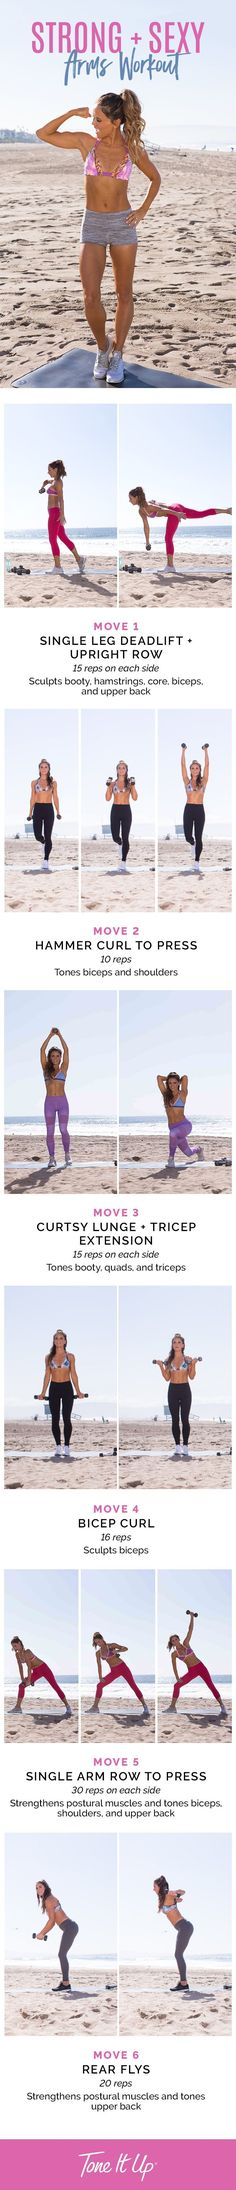 We put together some of our fave upper body moves in a brand new mashup for you! A strong upper body helps us stand tall with beautiful posture! And BONUS ~ when you stand with gorgeous posture, you activate your core for tummy toning effects too!